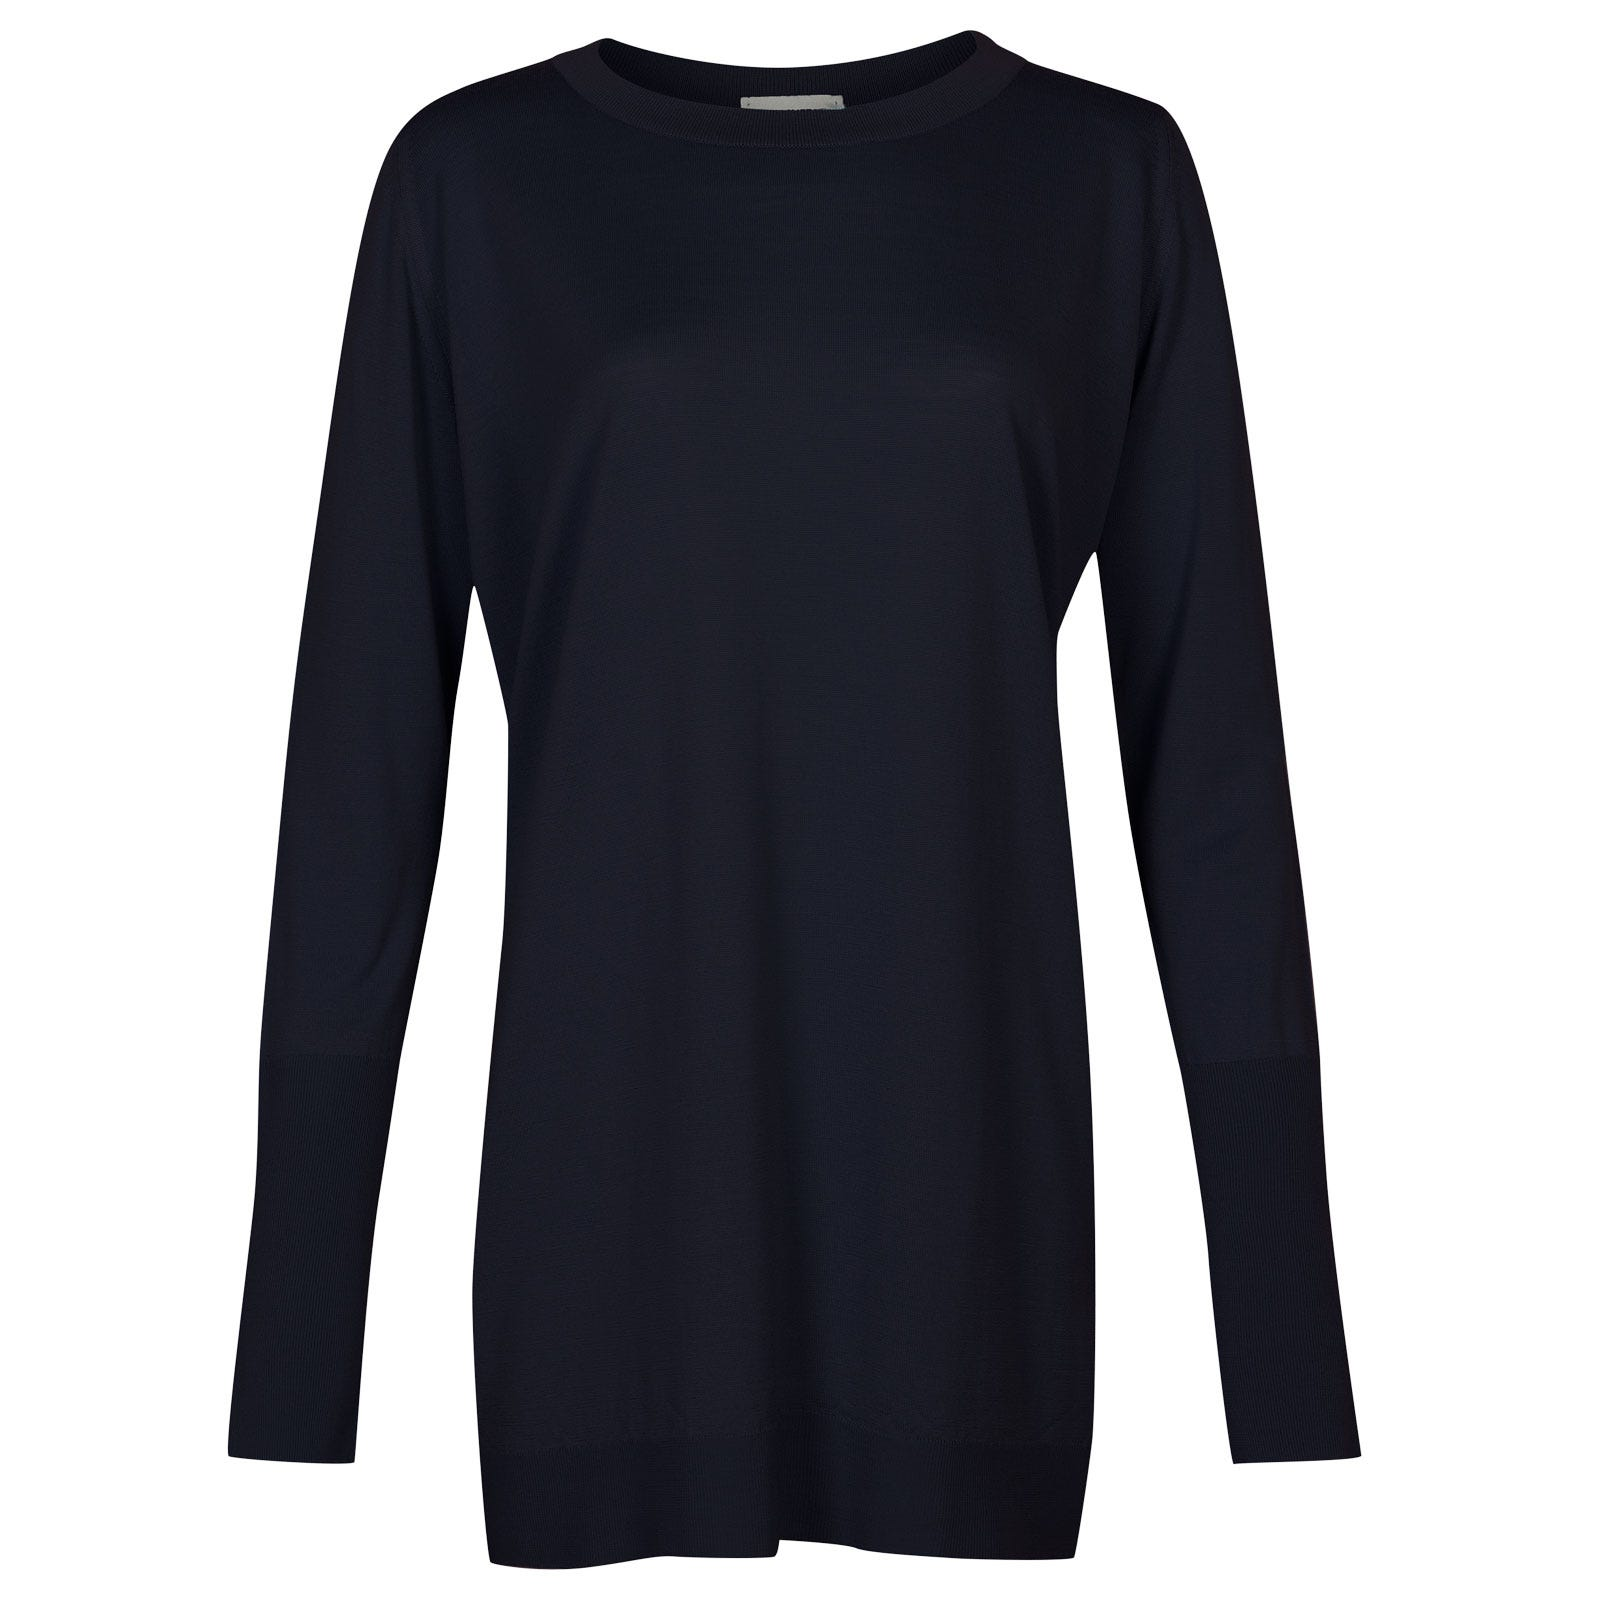 John Smedley molloy Merino Wool Sweater in Midnight-S